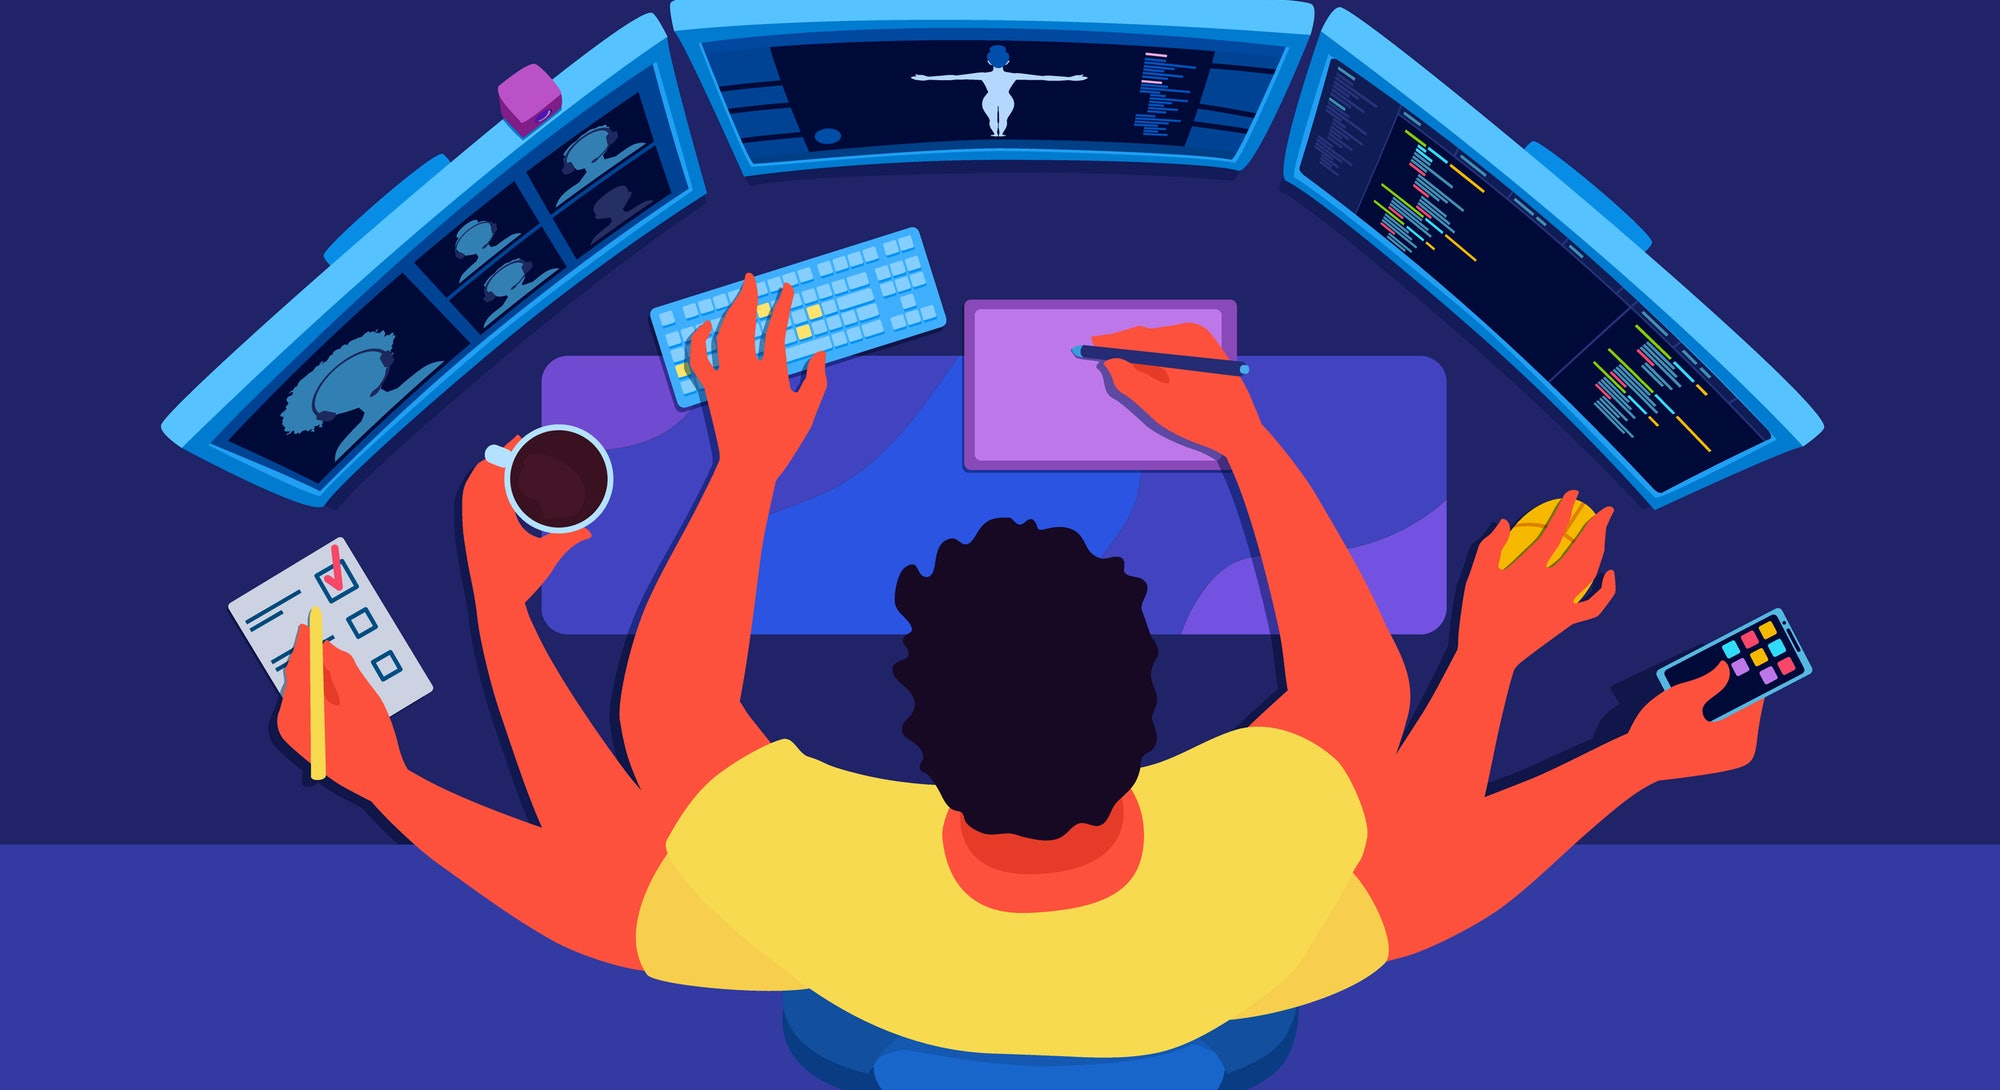 An indie developer, programmer with many hands doing all work by himself. A freelancer working at home, drawing, programming a video game. A multitasking concept. A view from above.